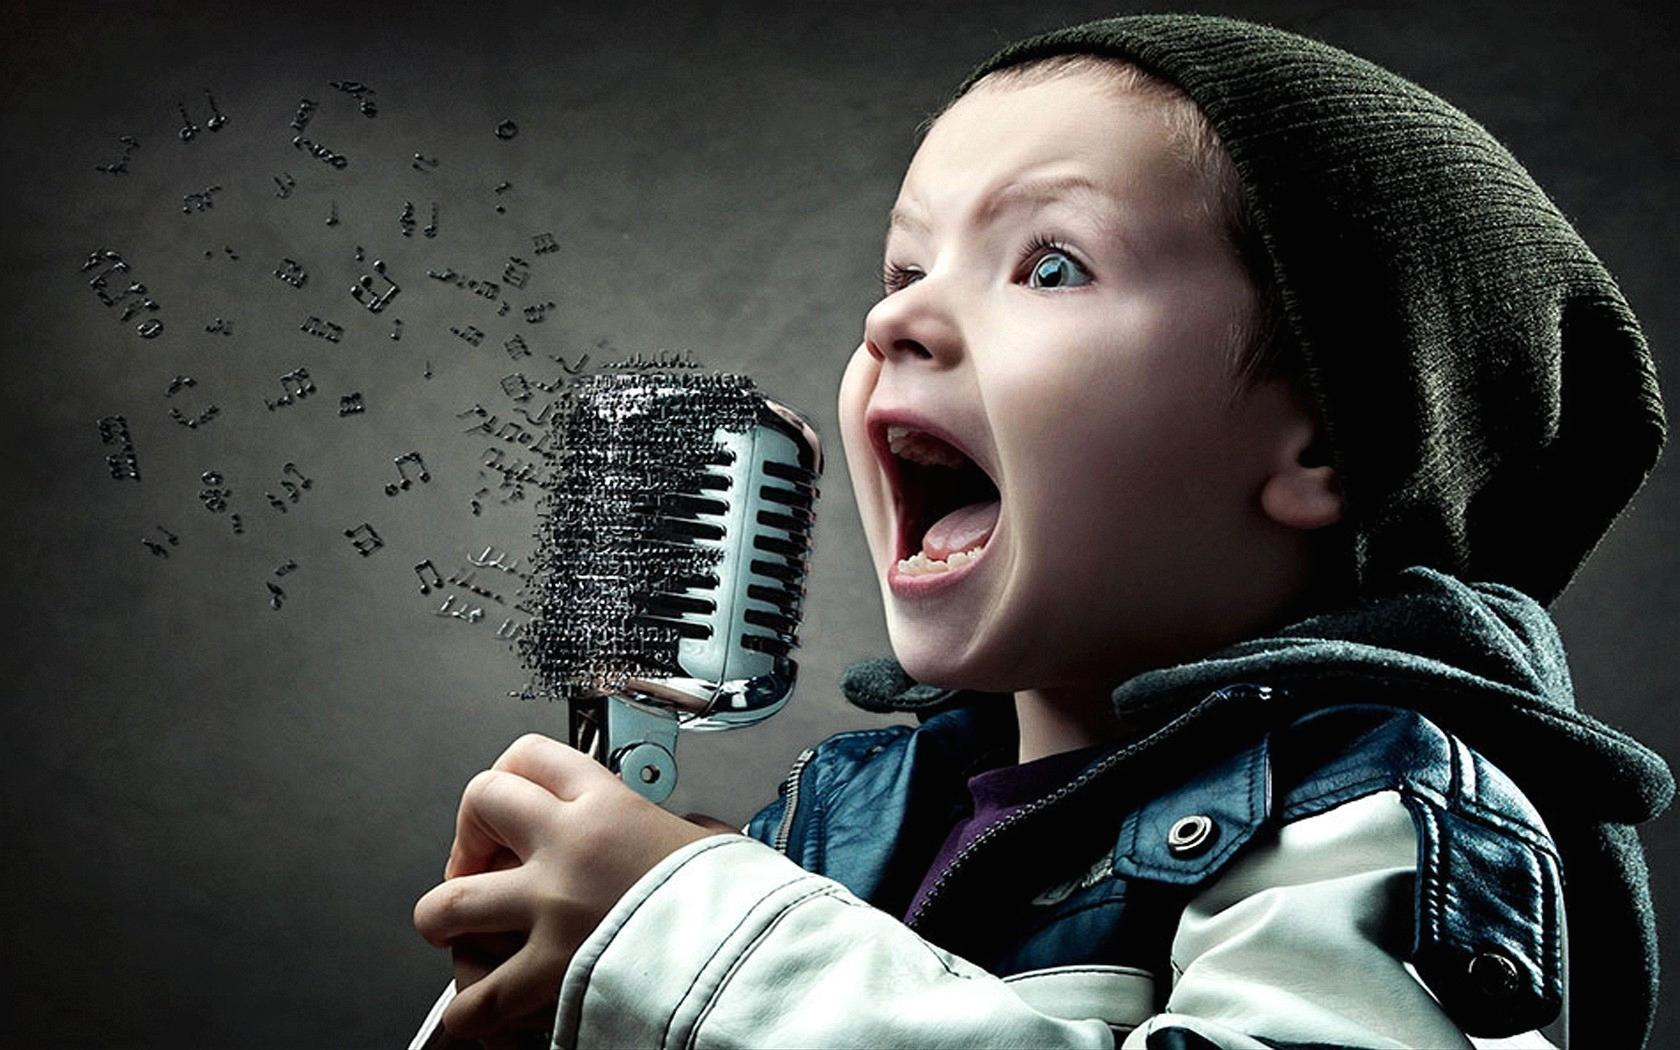 Wallpaper child singer notes music digital art